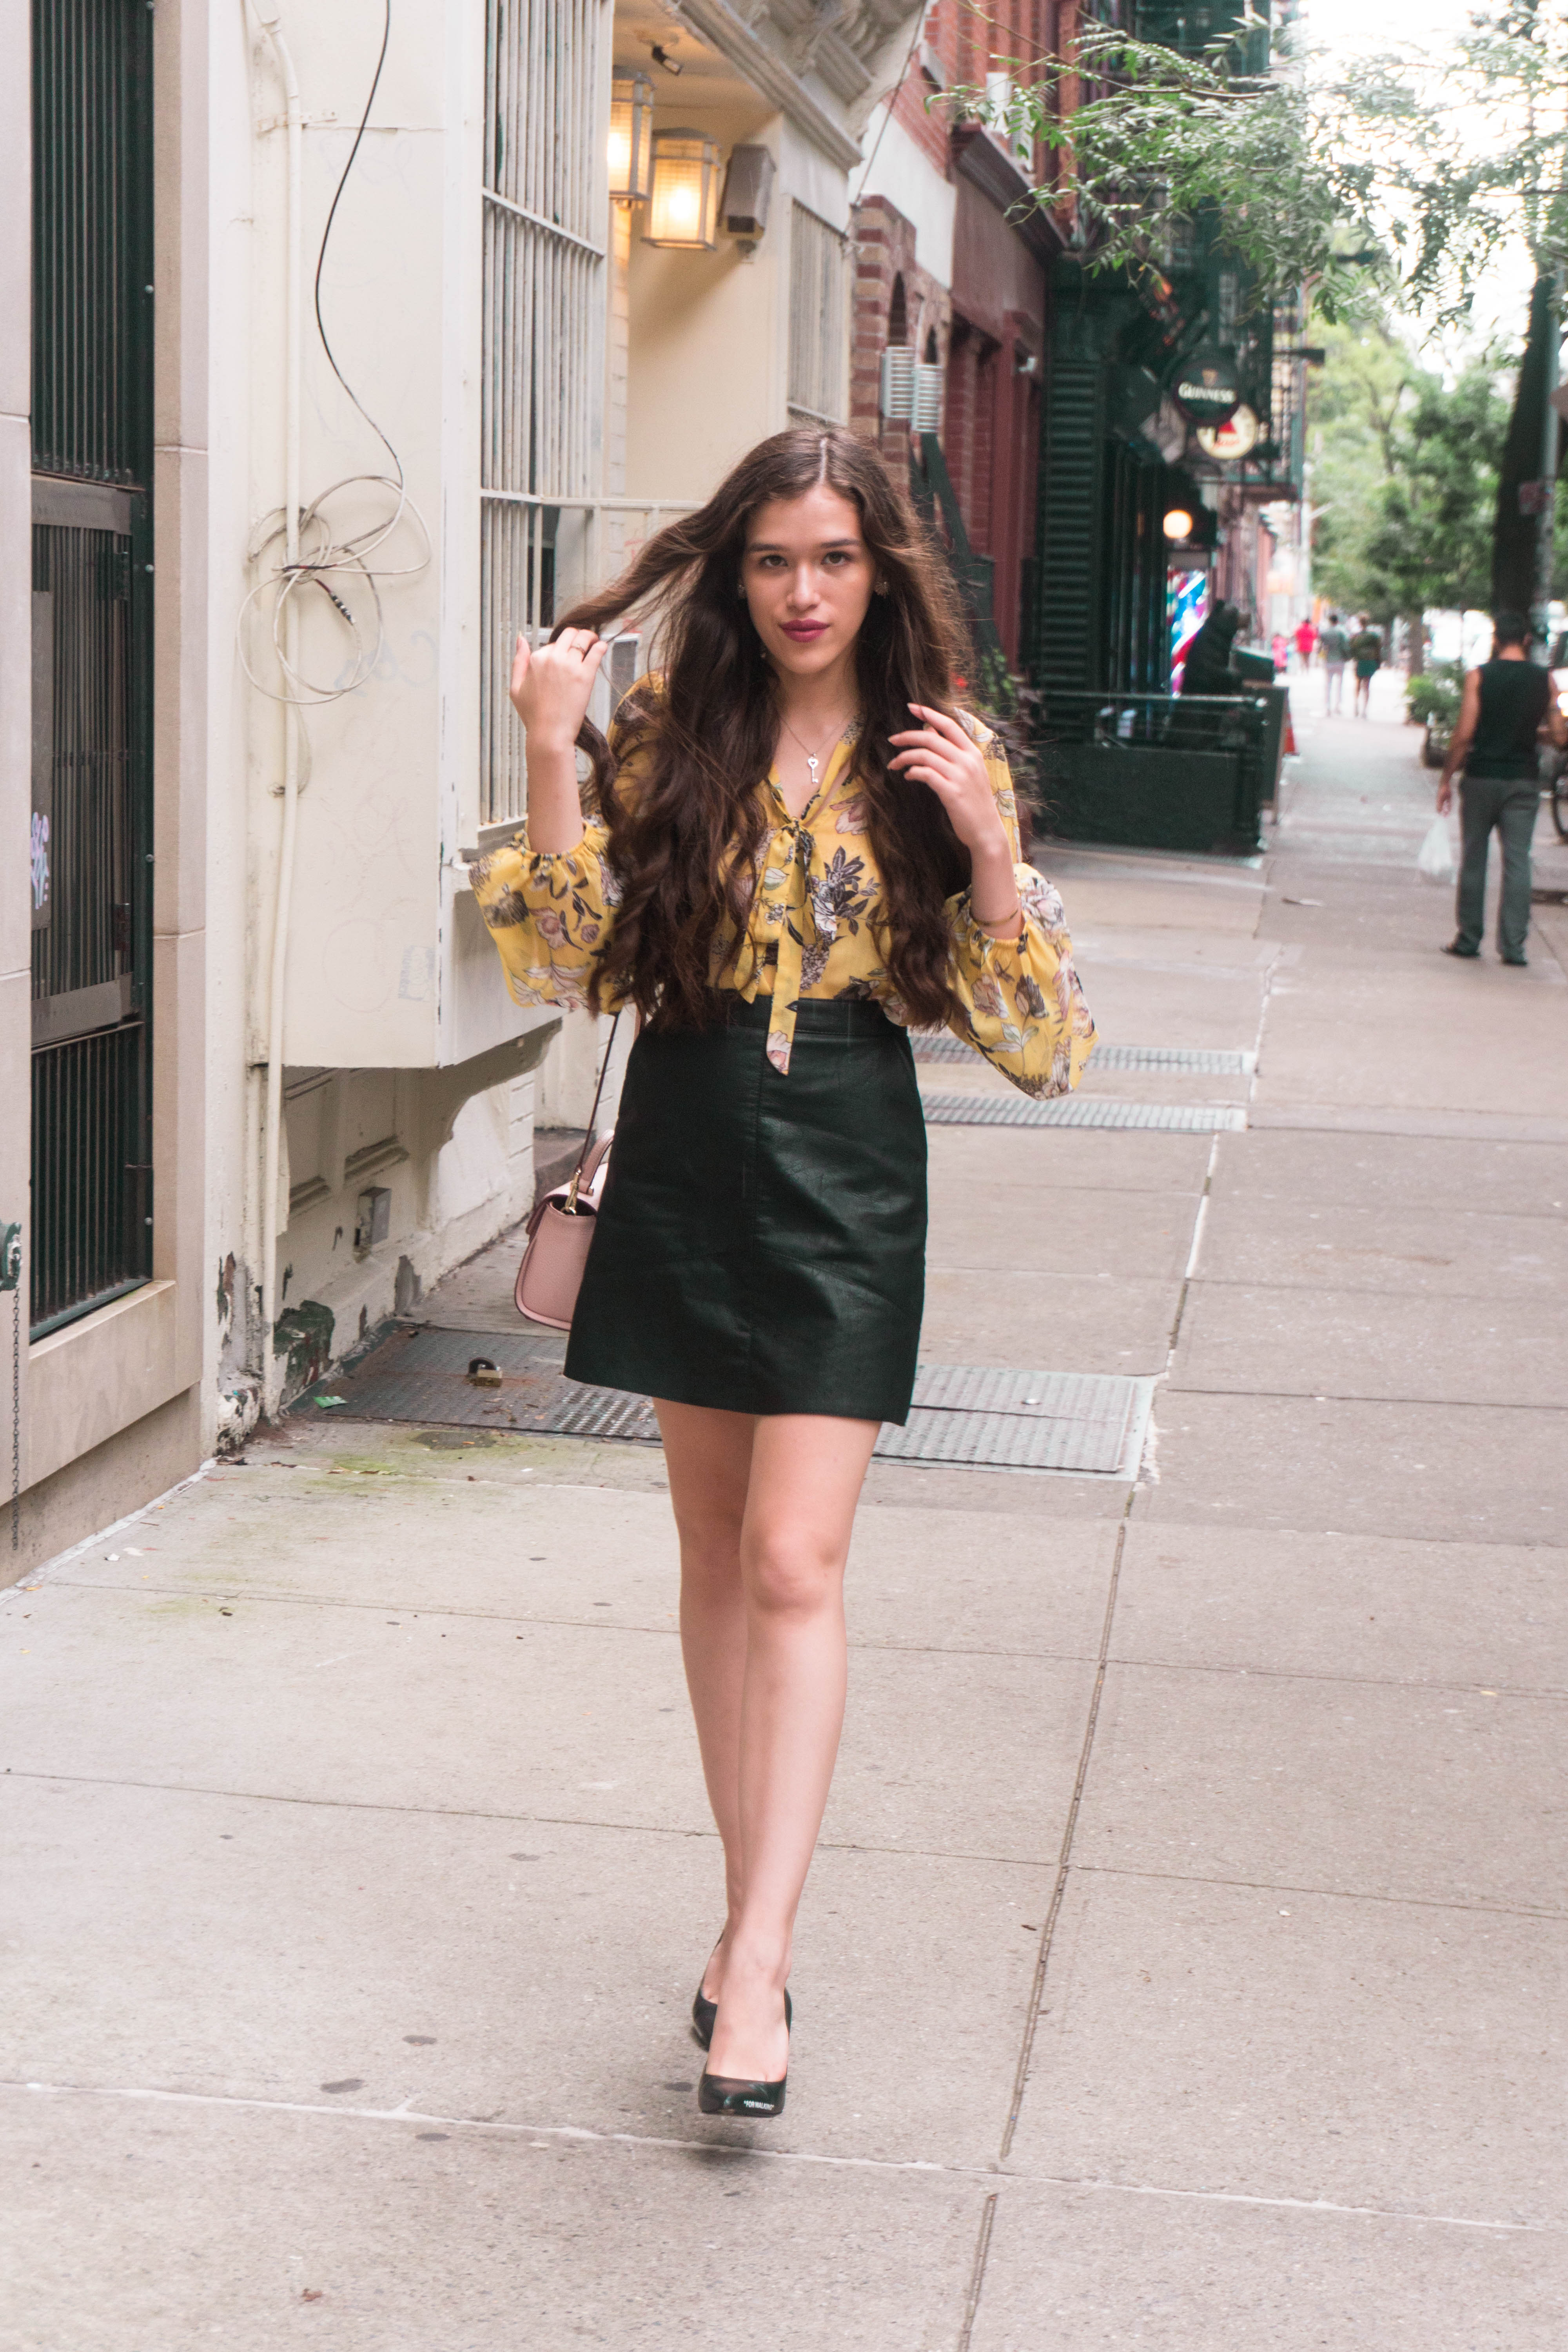 Style Blogger Eva Phan stylish workwear business attire casual office outfit pussy bow chiffon blouse with lantern sleeves yellow pink floral print black faux leather miniskirt from zara fall fashion inspiration girl with long brown thick hair curled pink kate spade makayla bag day to night fashion east village manhattan nyc alphabet city sitting off white c/o virgil abloh for walking heels pumps walking down sidewalk